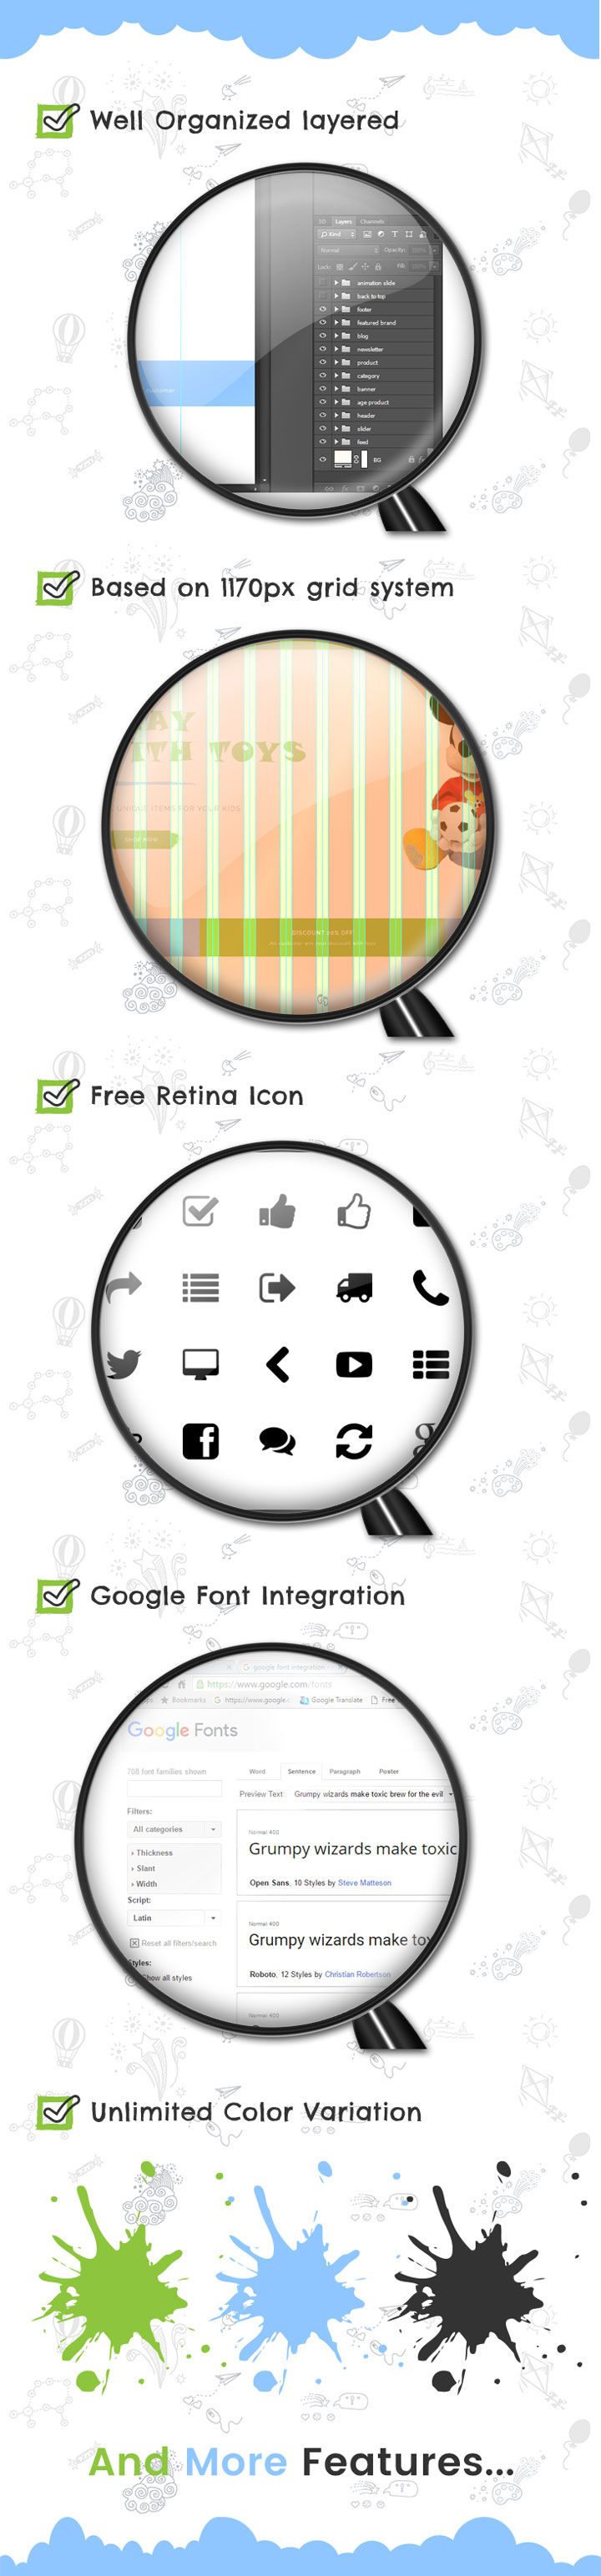 themetidy-Ktoy---Baby-&-Kid-Toys-Store-eCommerce-PSD-Template-description-feature-list-image